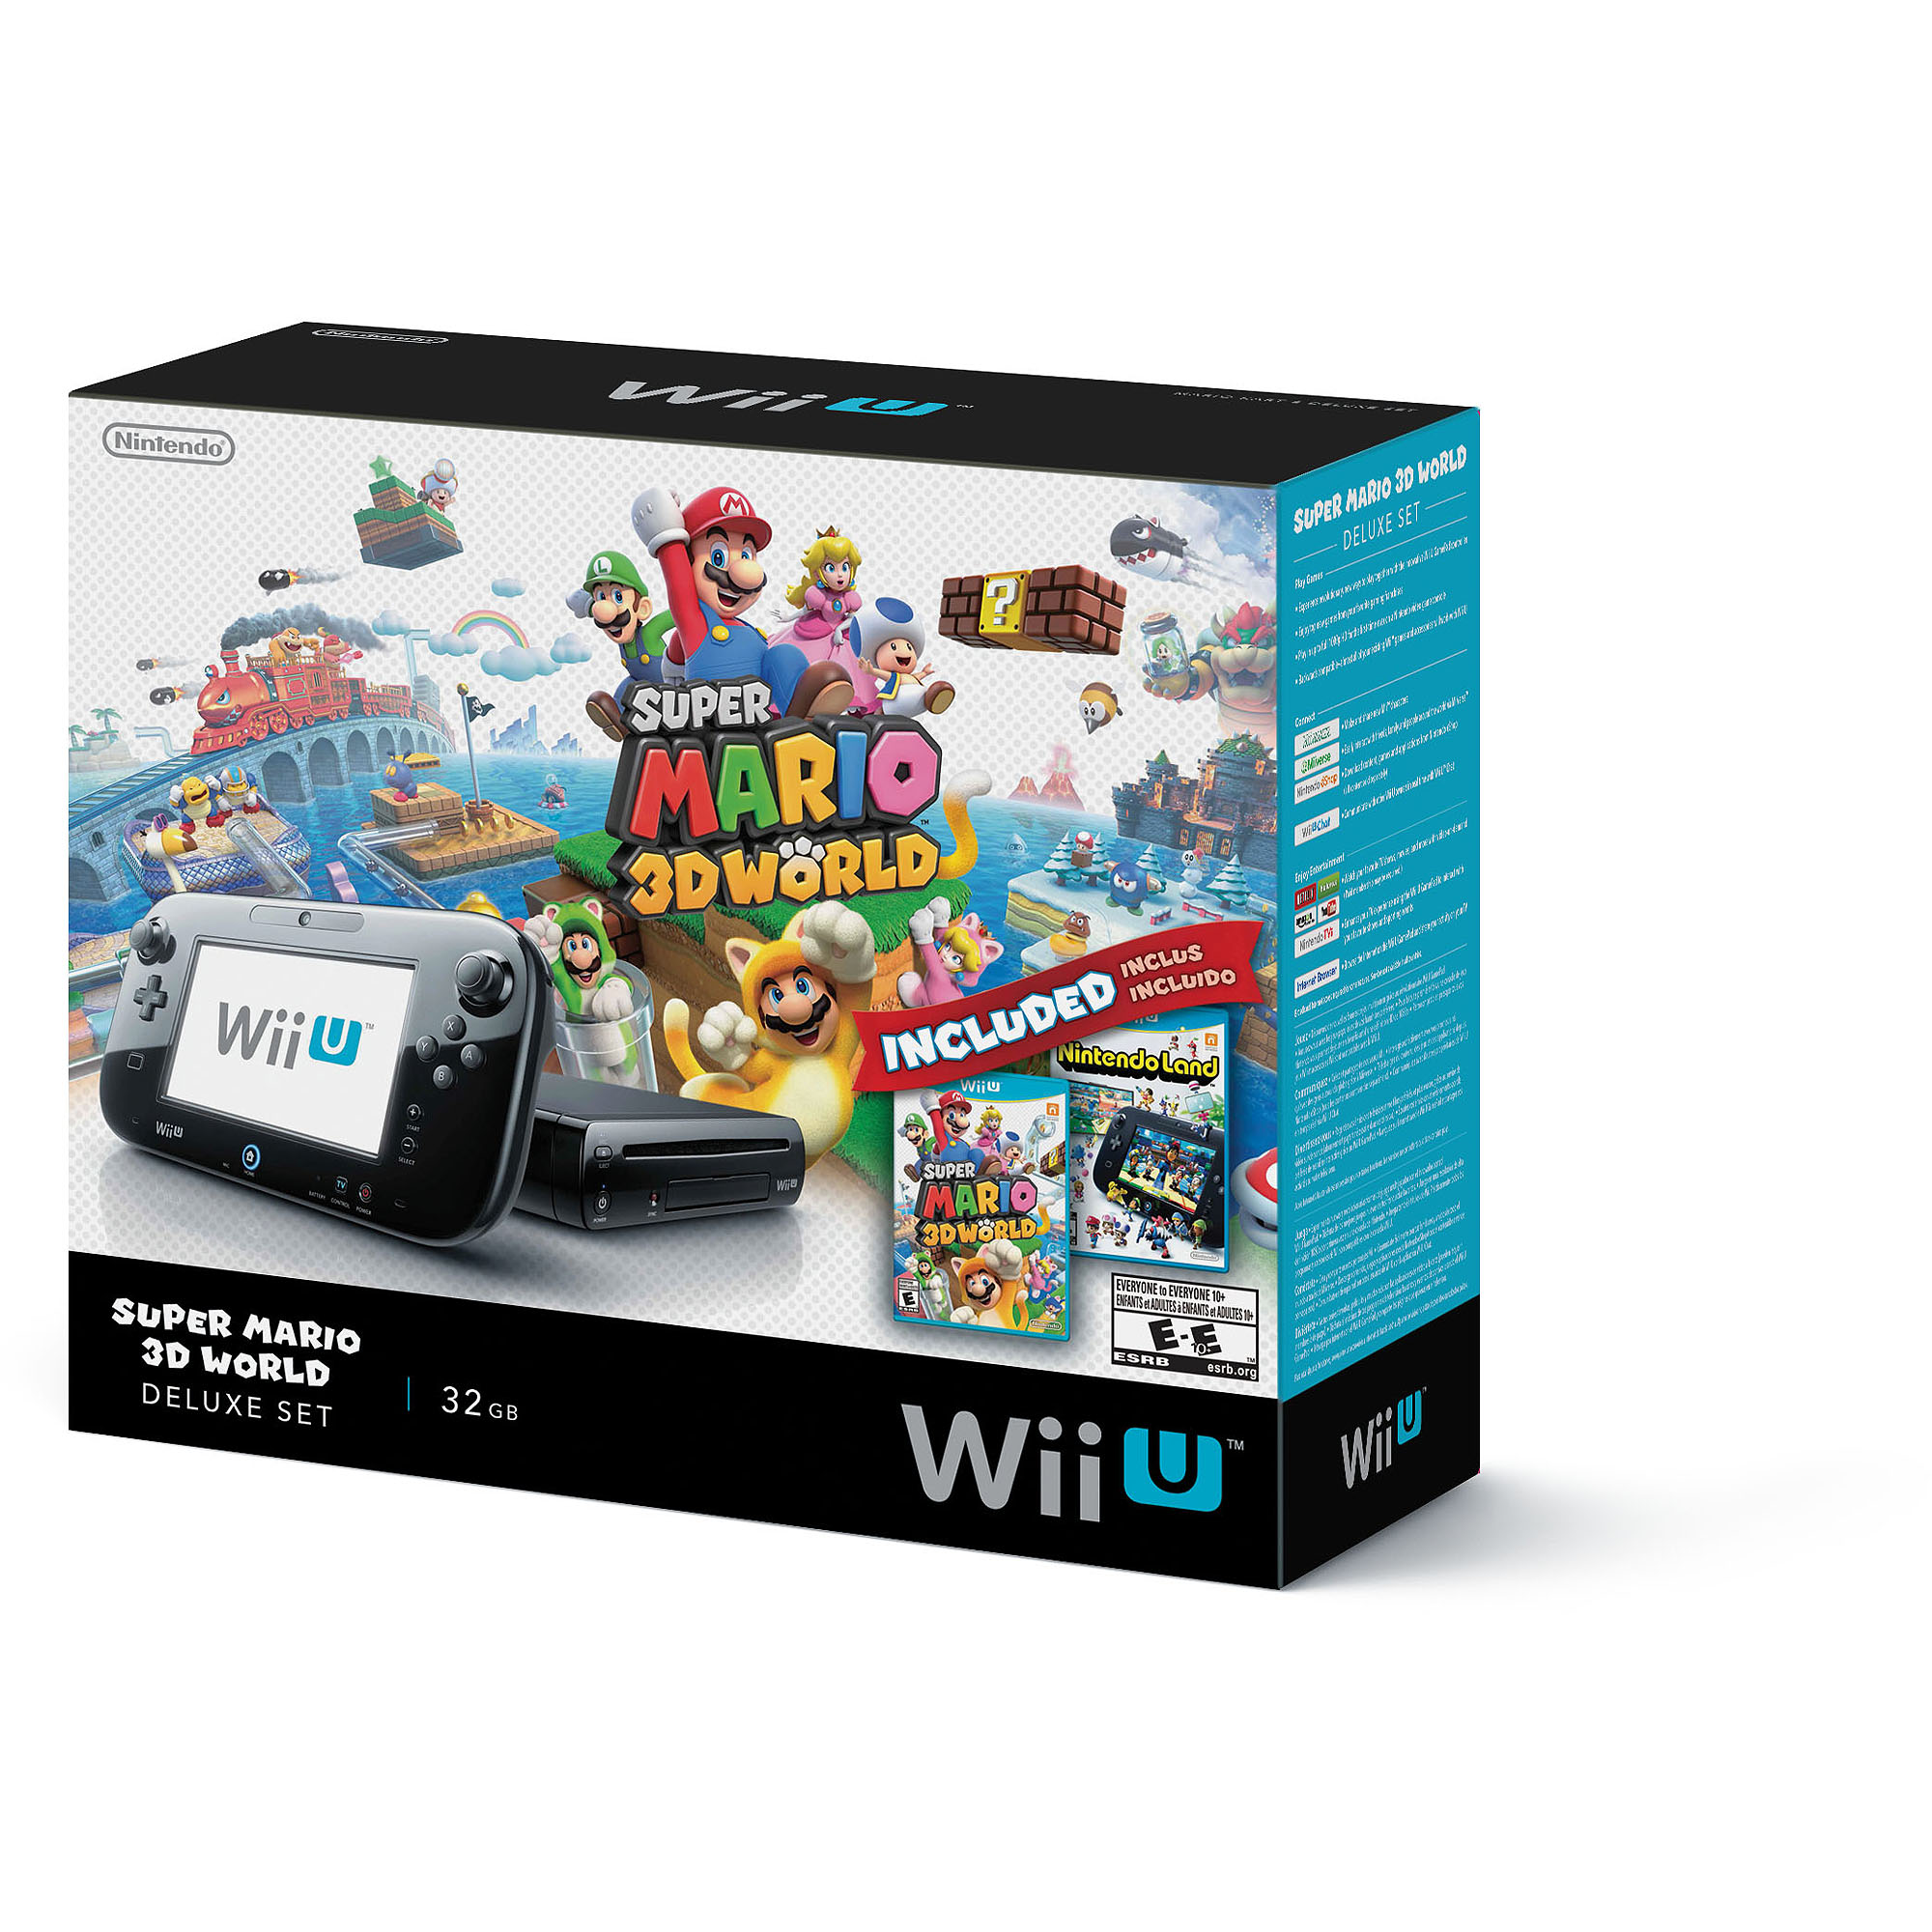 Nintendo Wii U Super Mario 3D World Deluxe Set Console